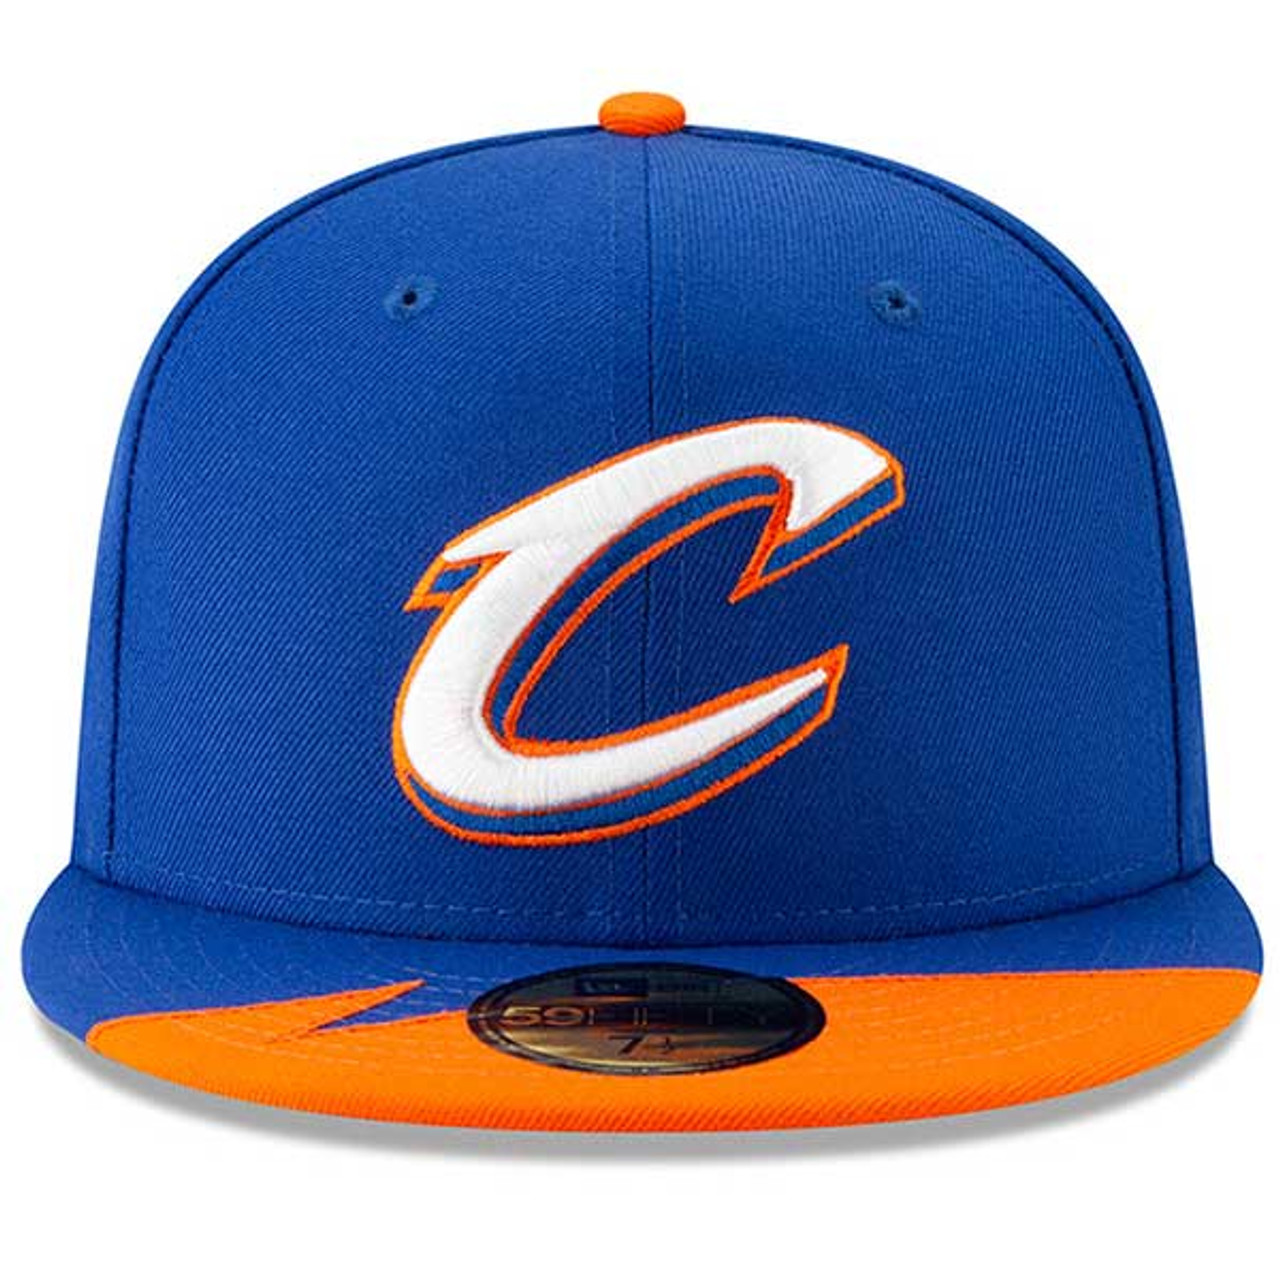 c6ccc1cf0a456 Cleveland City Edition Fitted Cap